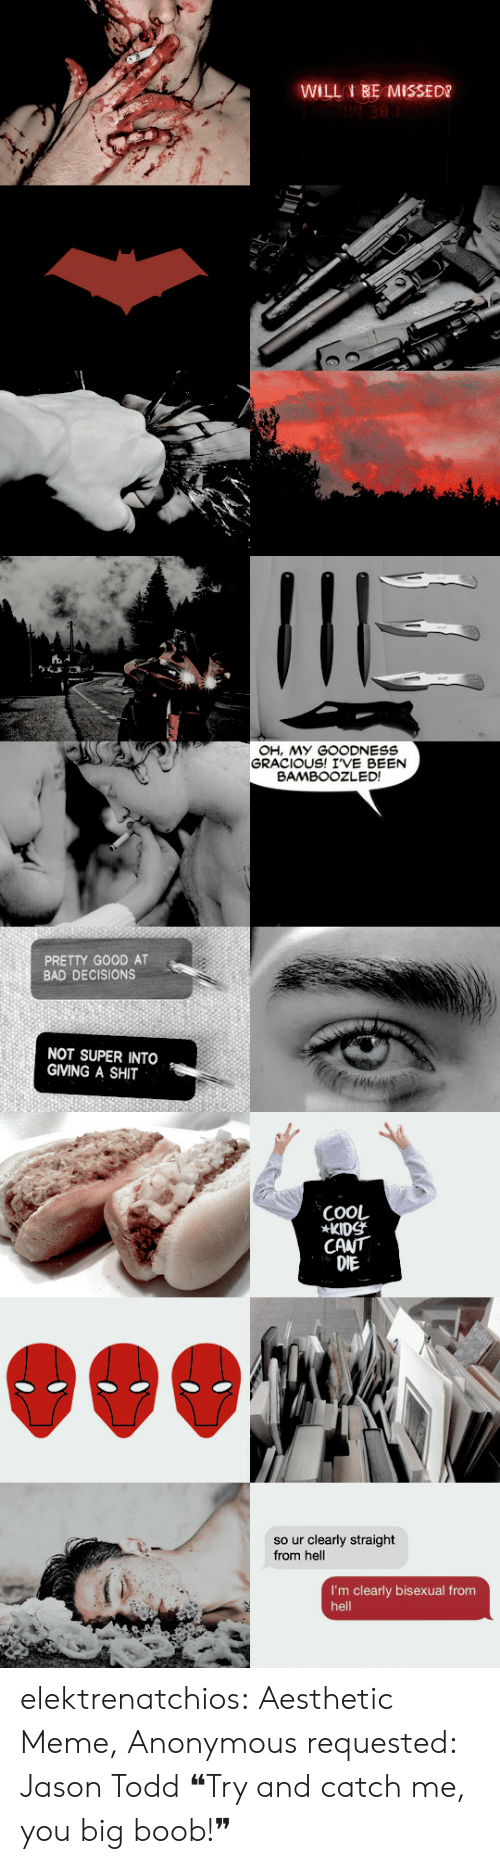 Bad Decisions: WILL BE MISSED?   OH, MY GOODNESS  GRACIOUS! IVE BEEN  BAMBOOZLED!  PRETTY GOOD AT  BAD DECISIONS  NOT SUPER INTO  GIVING A SHIT   COOL  KIDS  CANT  DIE  so ur clearly straight  from hell  I'm clearly bisexual from  hell elektrenatchios:  Aesthetic Meme, Anonymous requested: Jason Todd   ❝Try and catch me, you big boob!❞